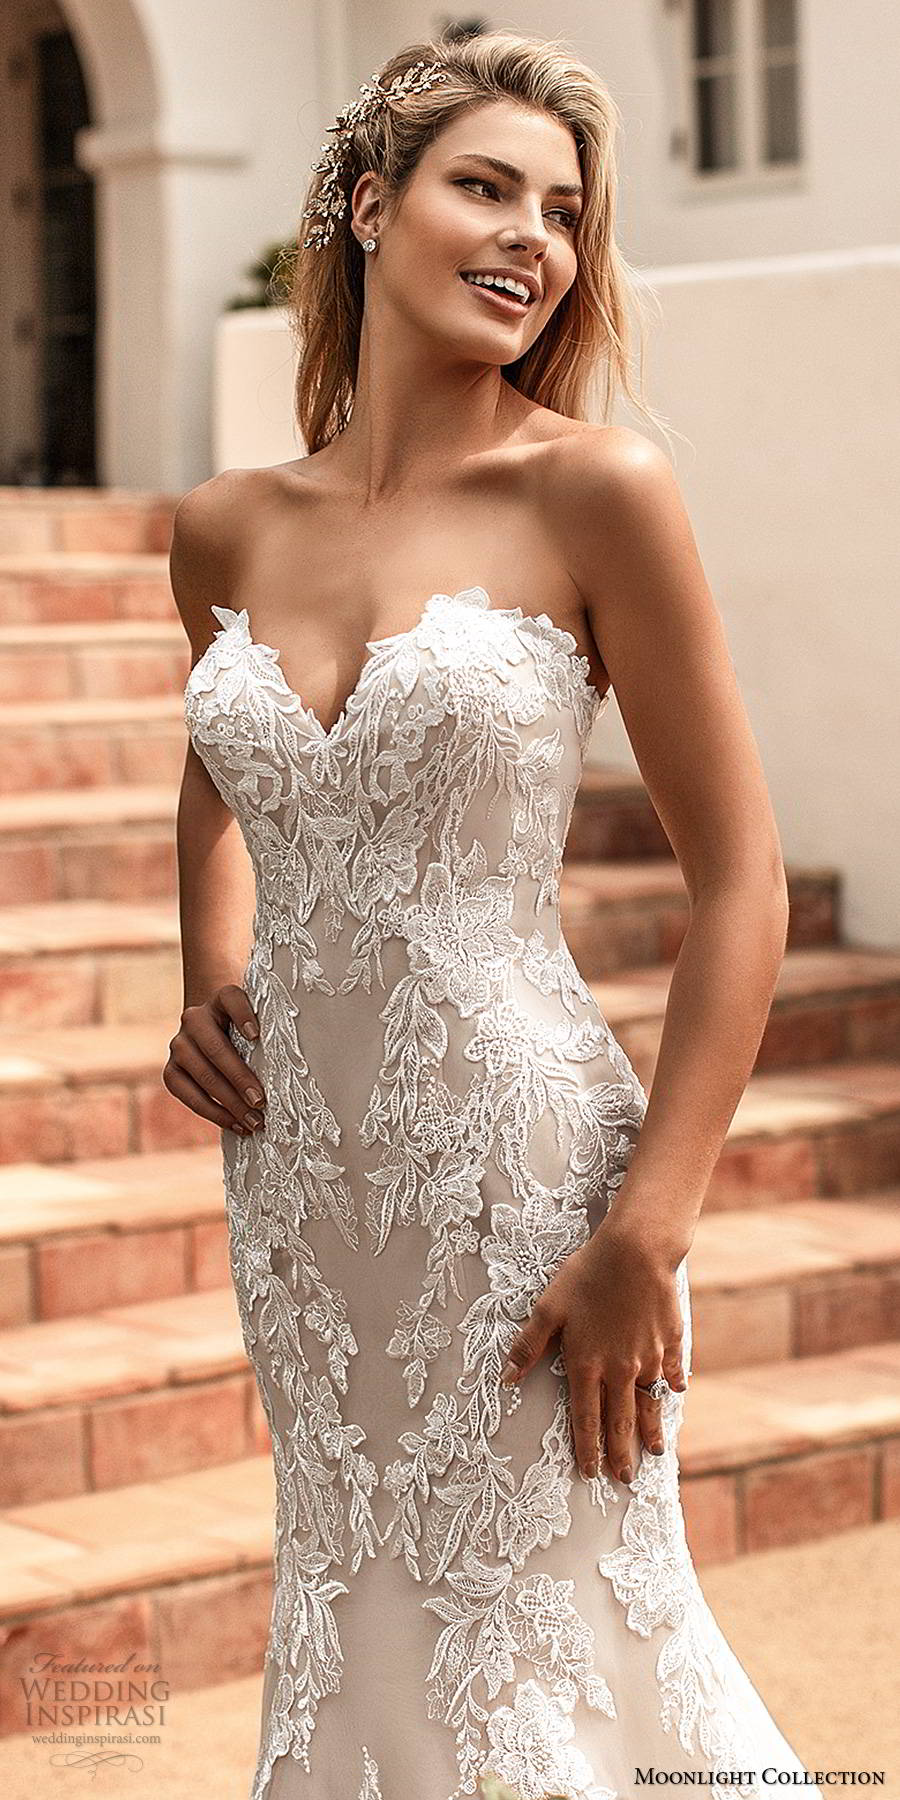 moonlight collection spring 2020 bridal strapless sweetheart fully embellished lace sheath elegant romantic wedding dress chapel train (12) zv